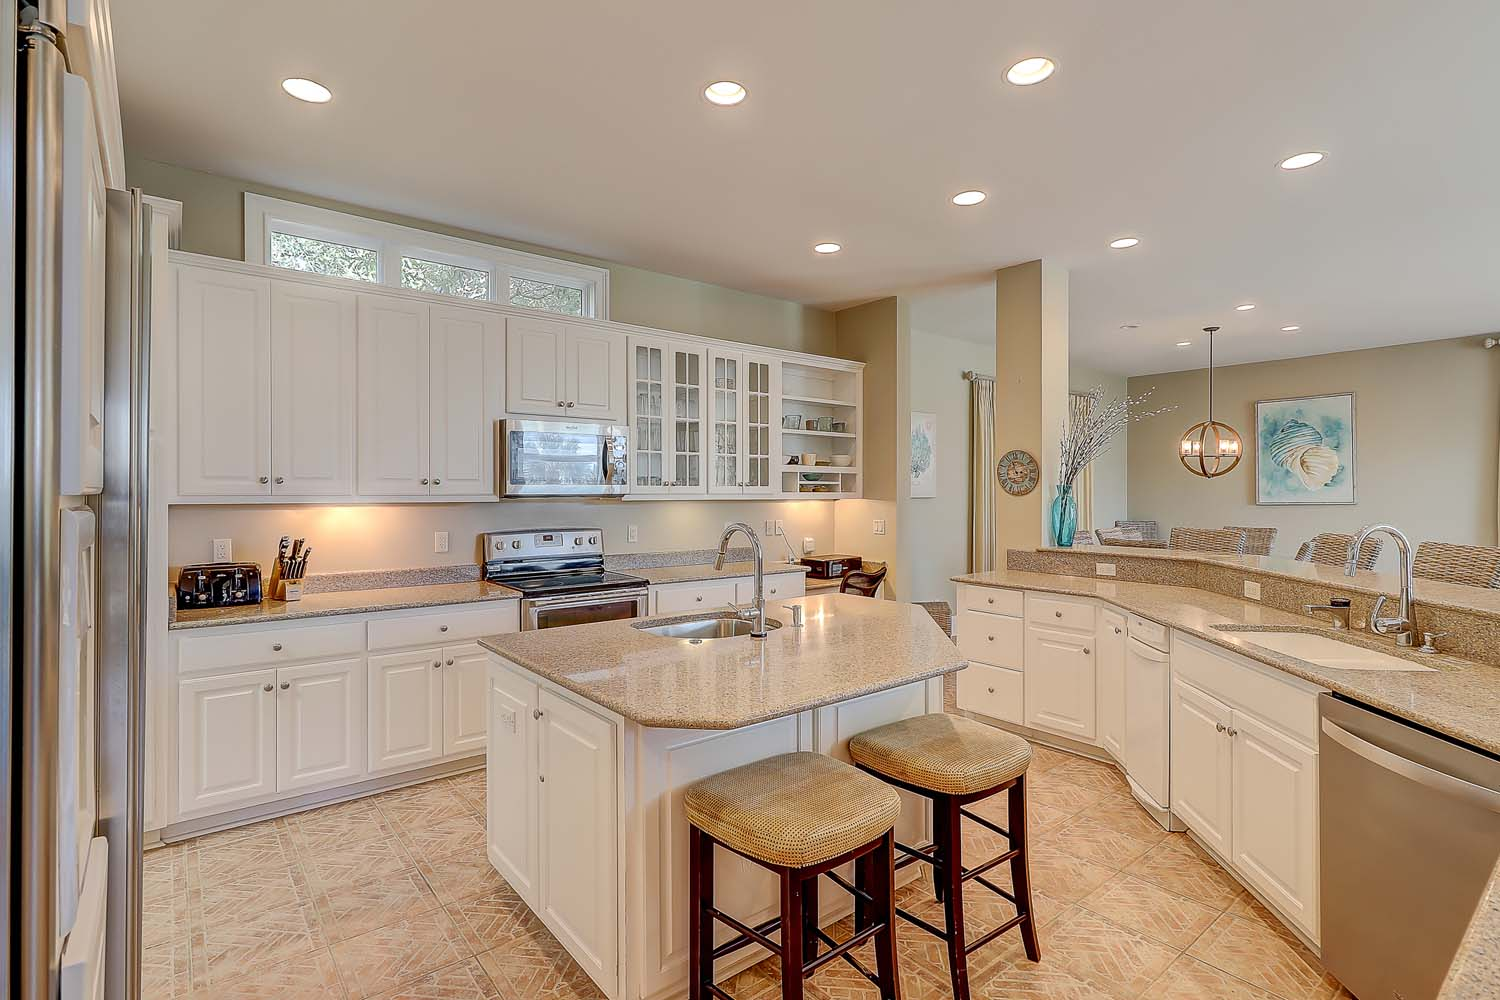 Kitchen is large, fully-equipped and has center island prep area that also seats 2. You will enjoy preparing daily meals in the hub of the first floor living space.